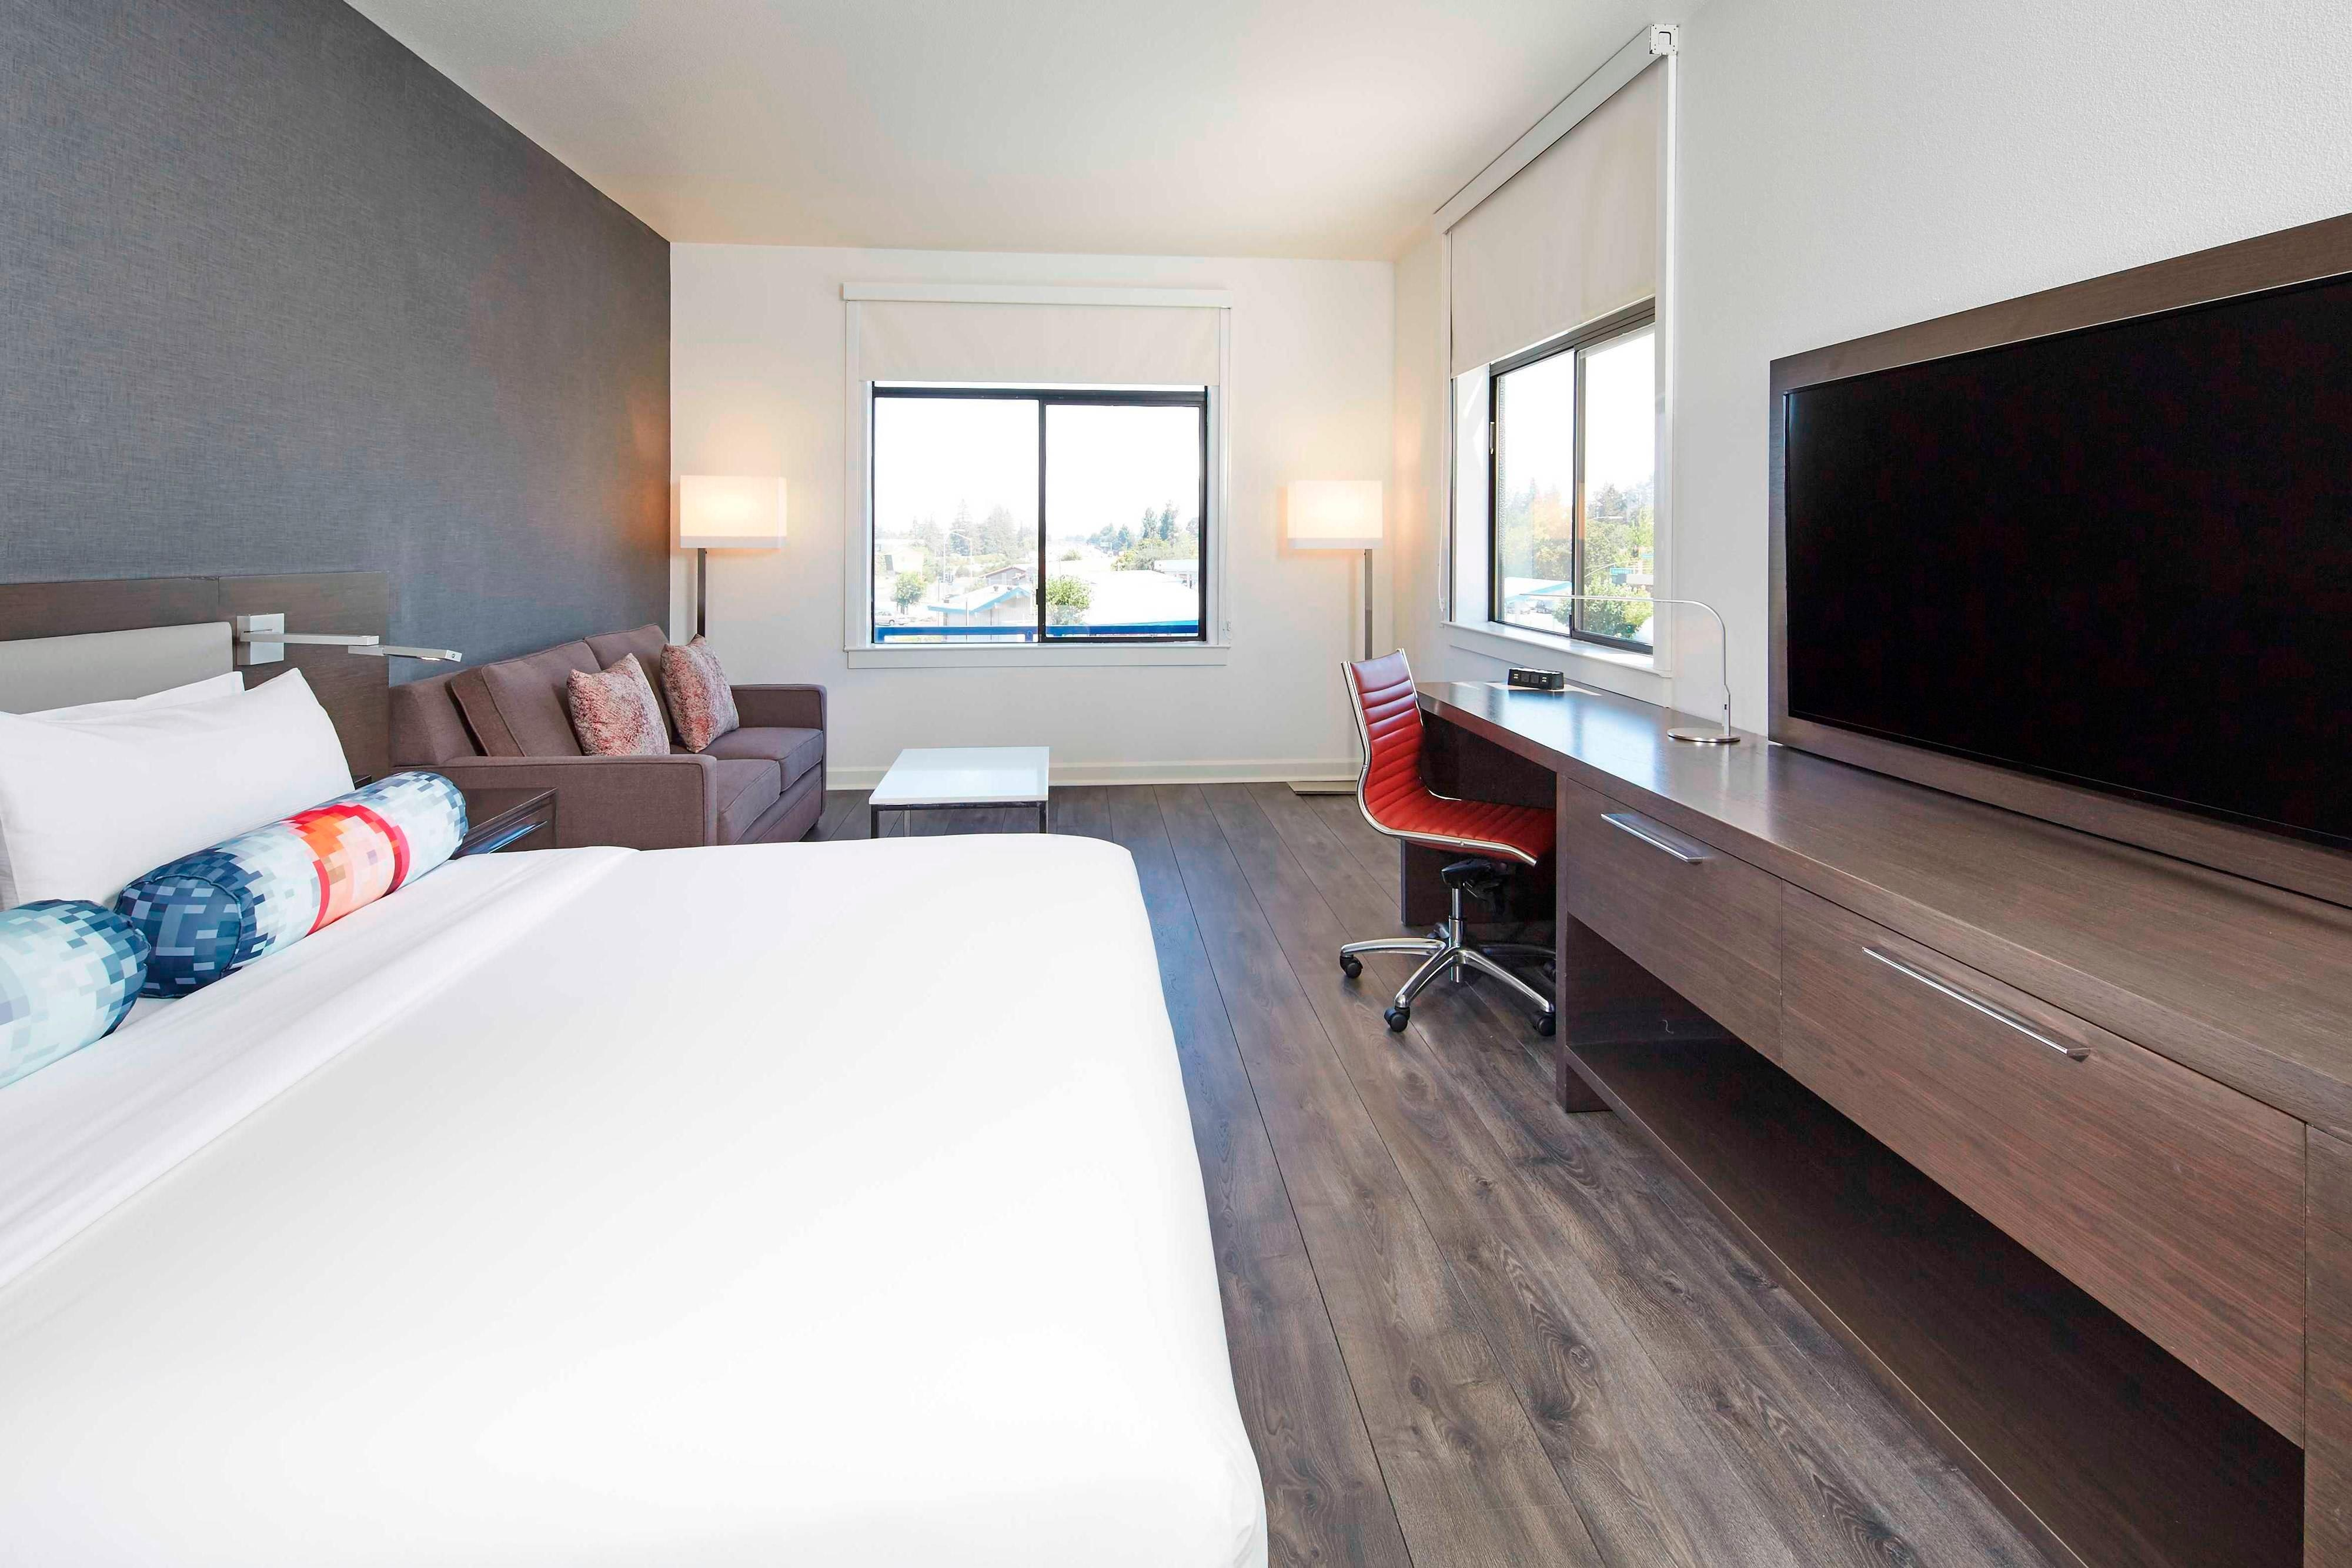 Aloft Guest Room